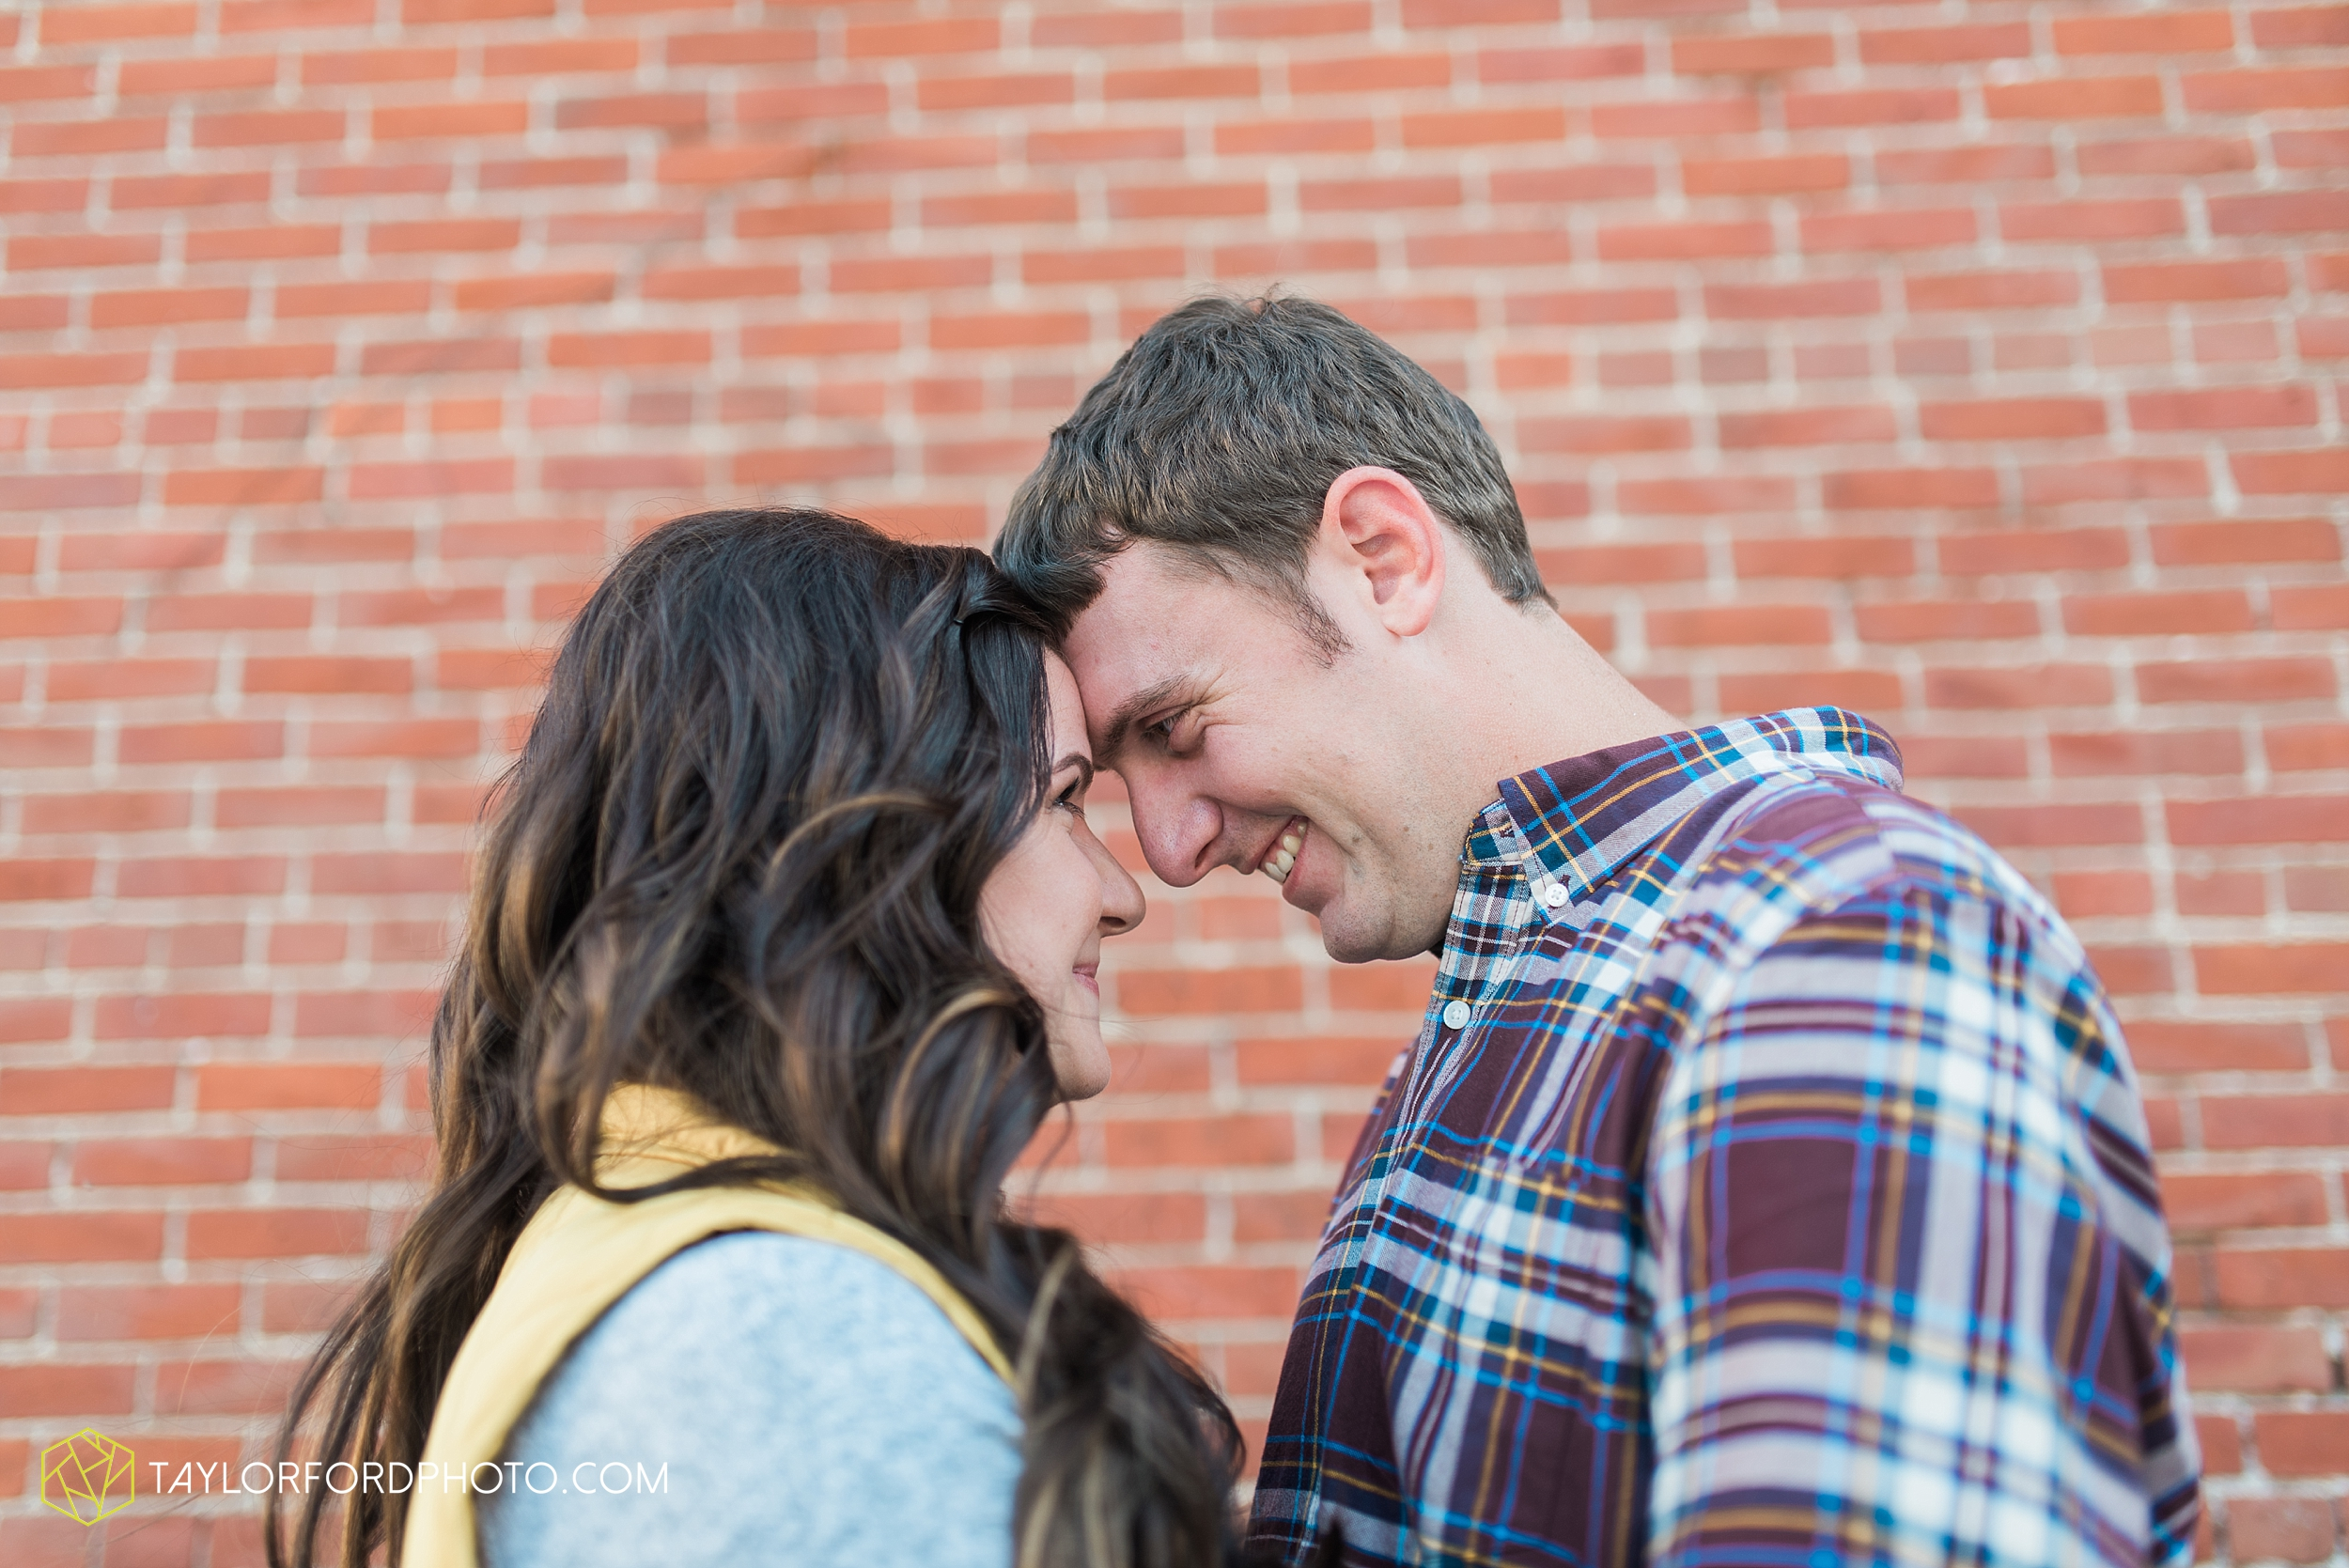 fort-wayne-indiana-engagement-wedding-photographer-Taylor-Ford-Photography-salomon-farm-park_3558.jpg